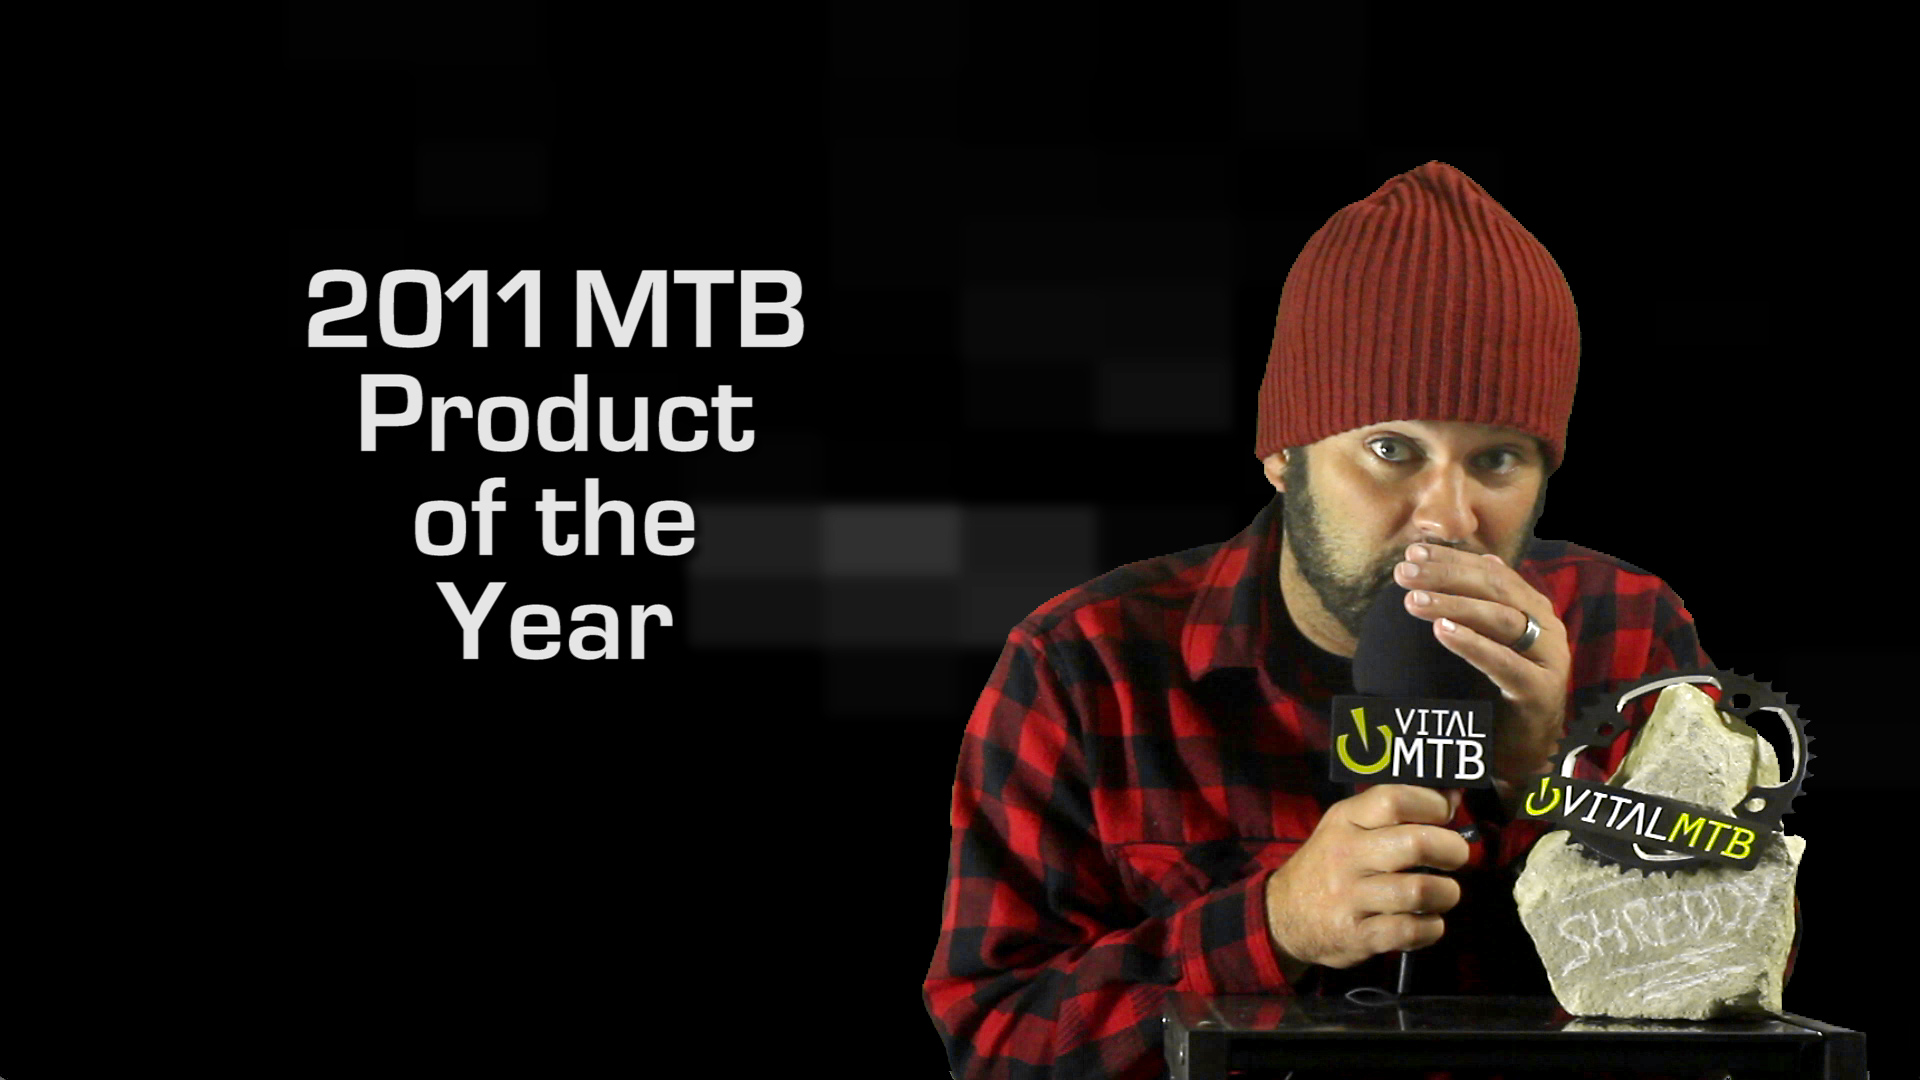 2011 Vital MTB Shreddy Awards - MTB Product of the Year